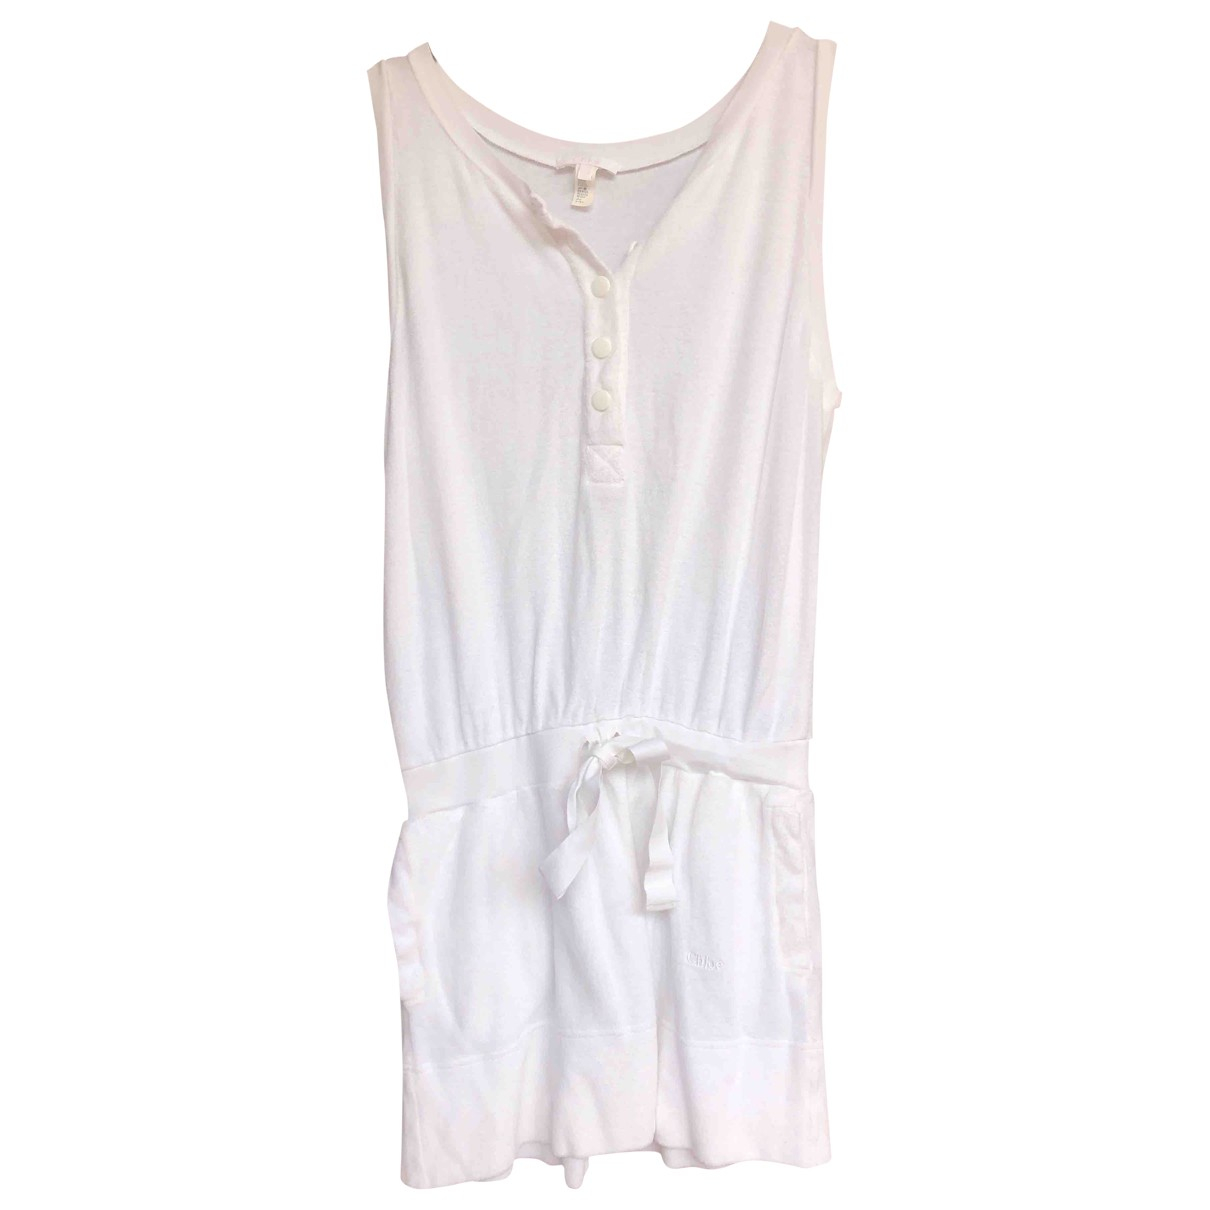 Chloé \N White Cotton dress for Women 40 IT